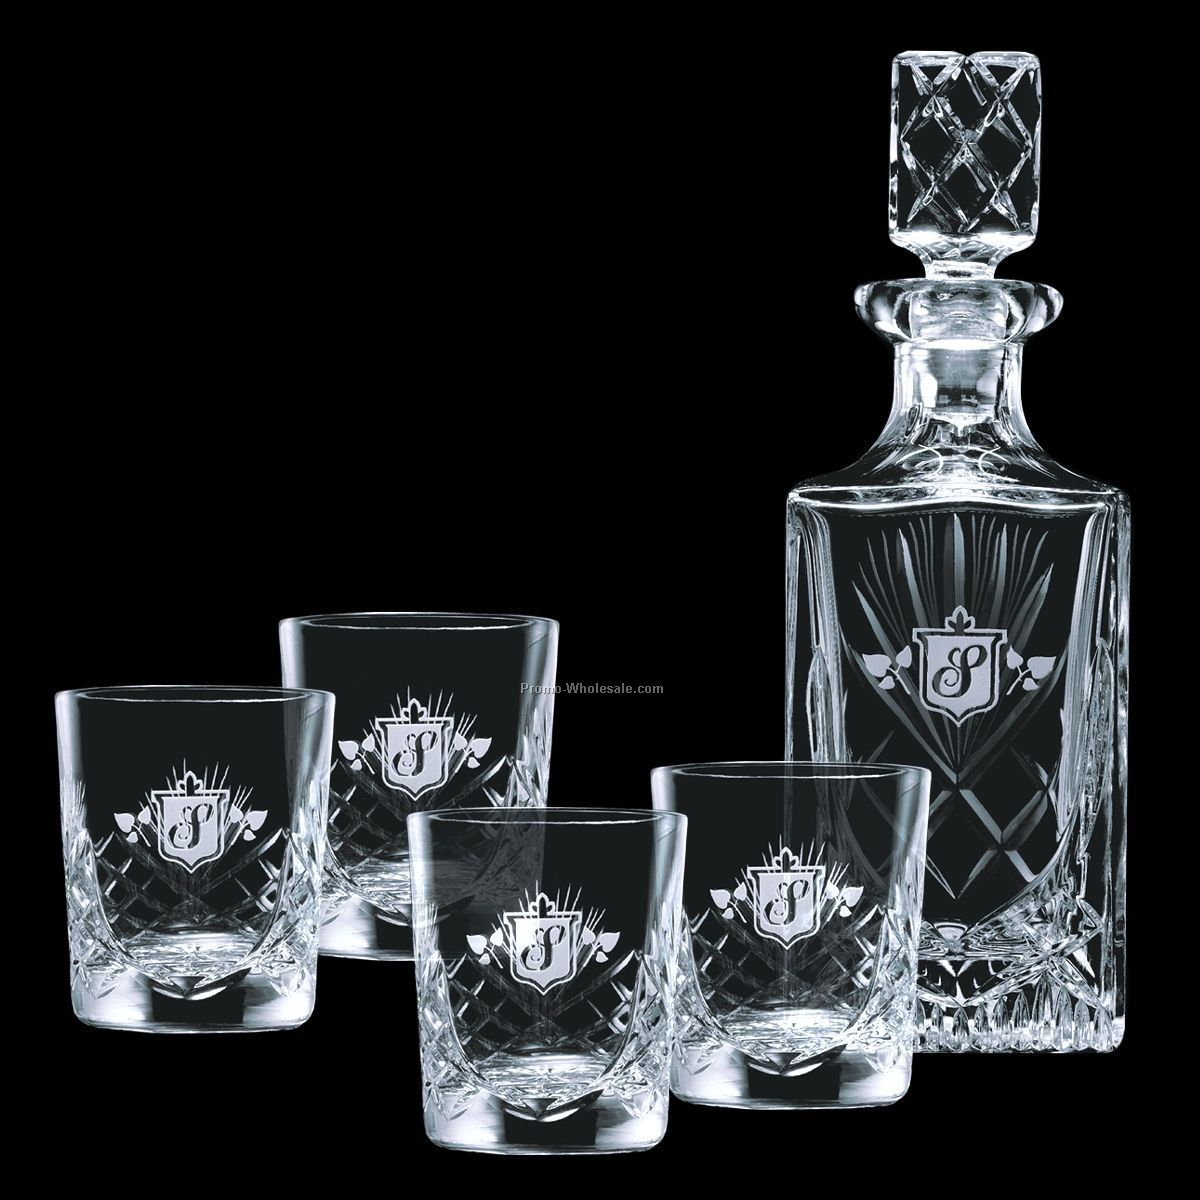 28 Oz. Cavanaugh Crystal Decanter & 4 On-the-rocks Glasses